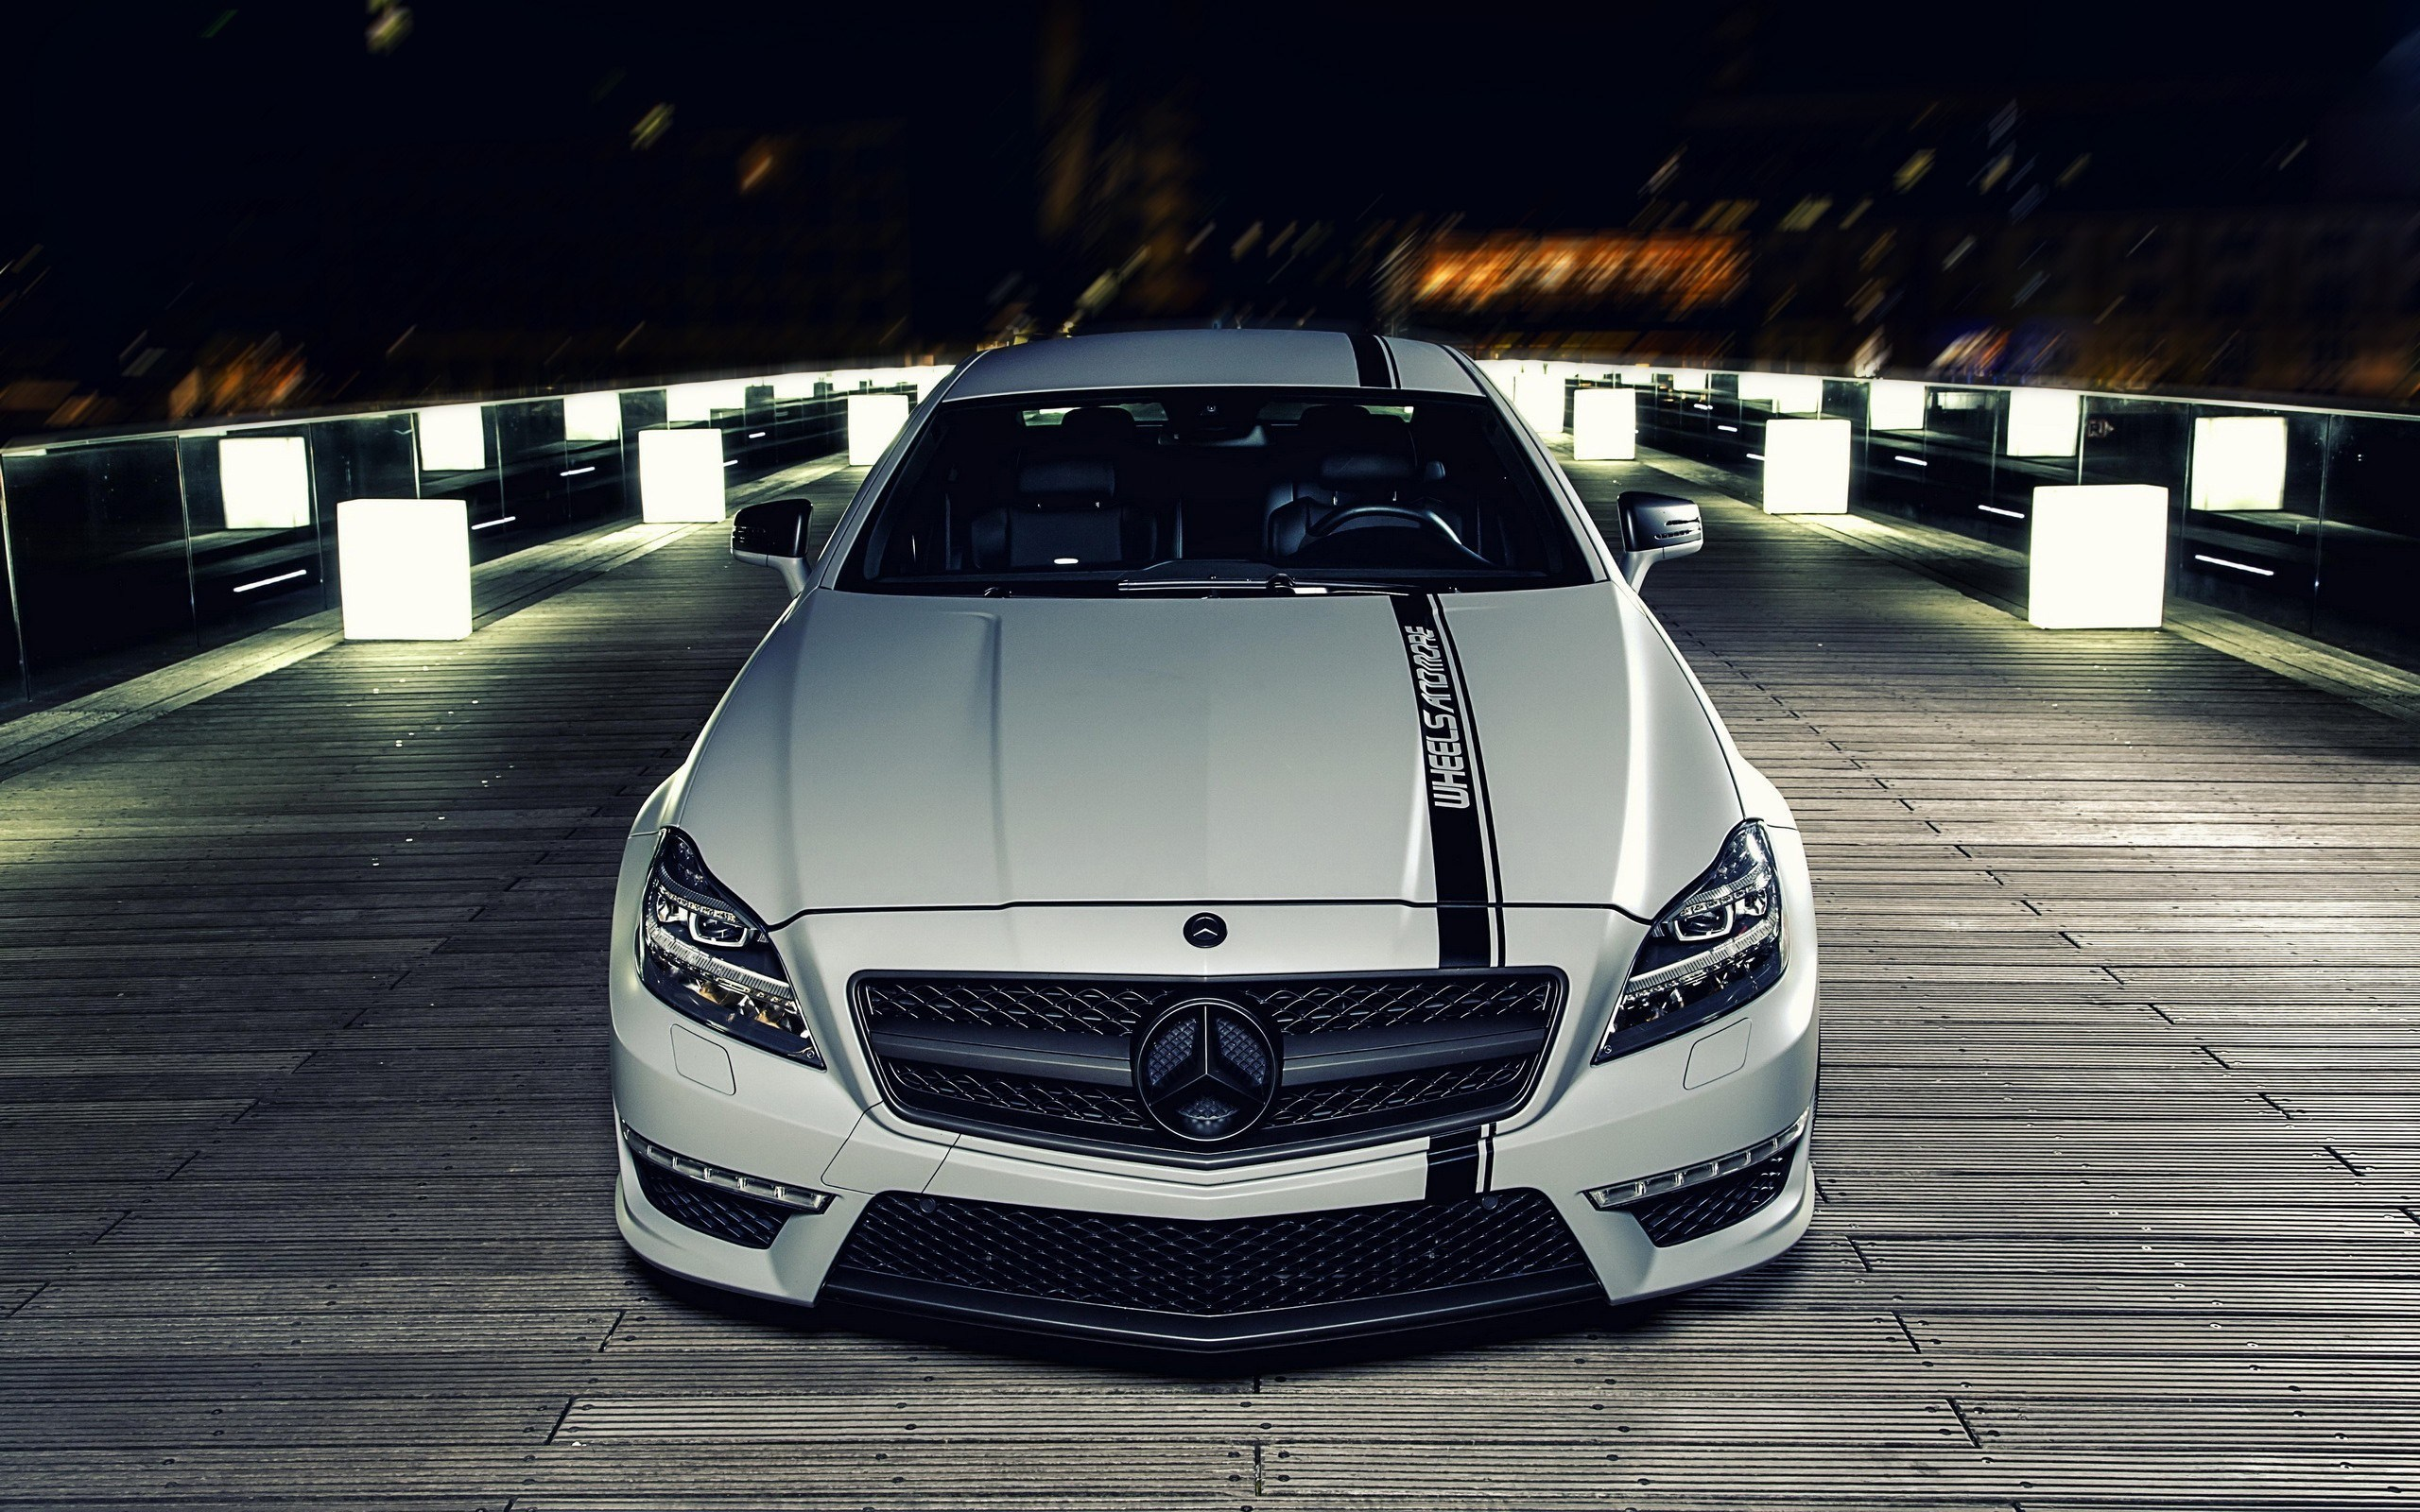 Mercedes Benz AMG Wallpapers Group (93+)